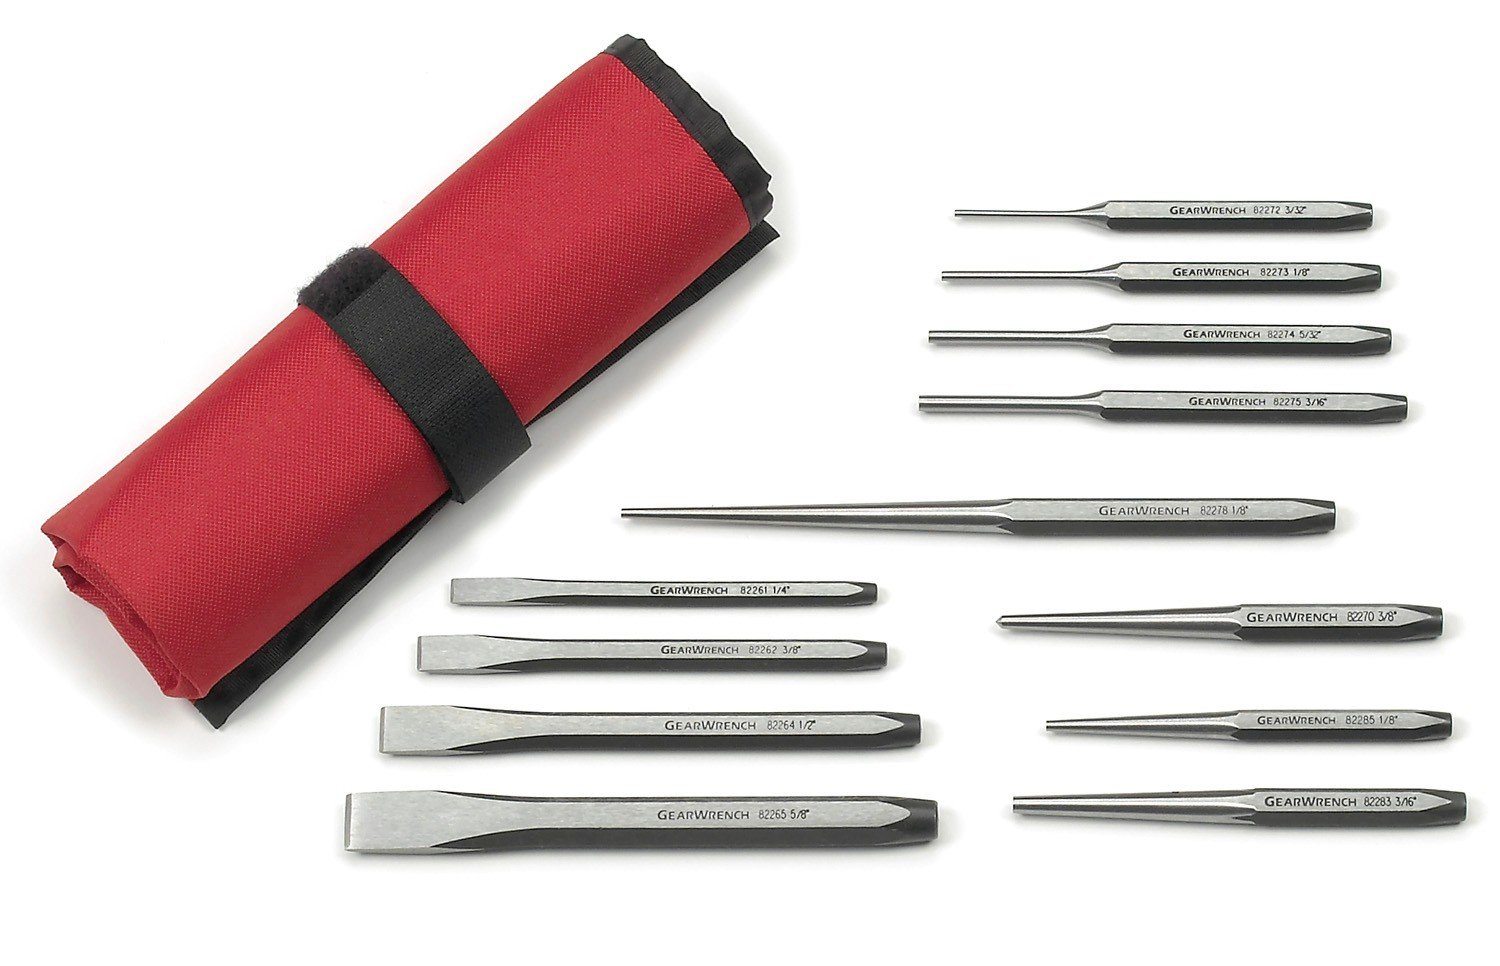 GearWrench 82305 12 Pc. Punch and Chisel Set by GearWrench